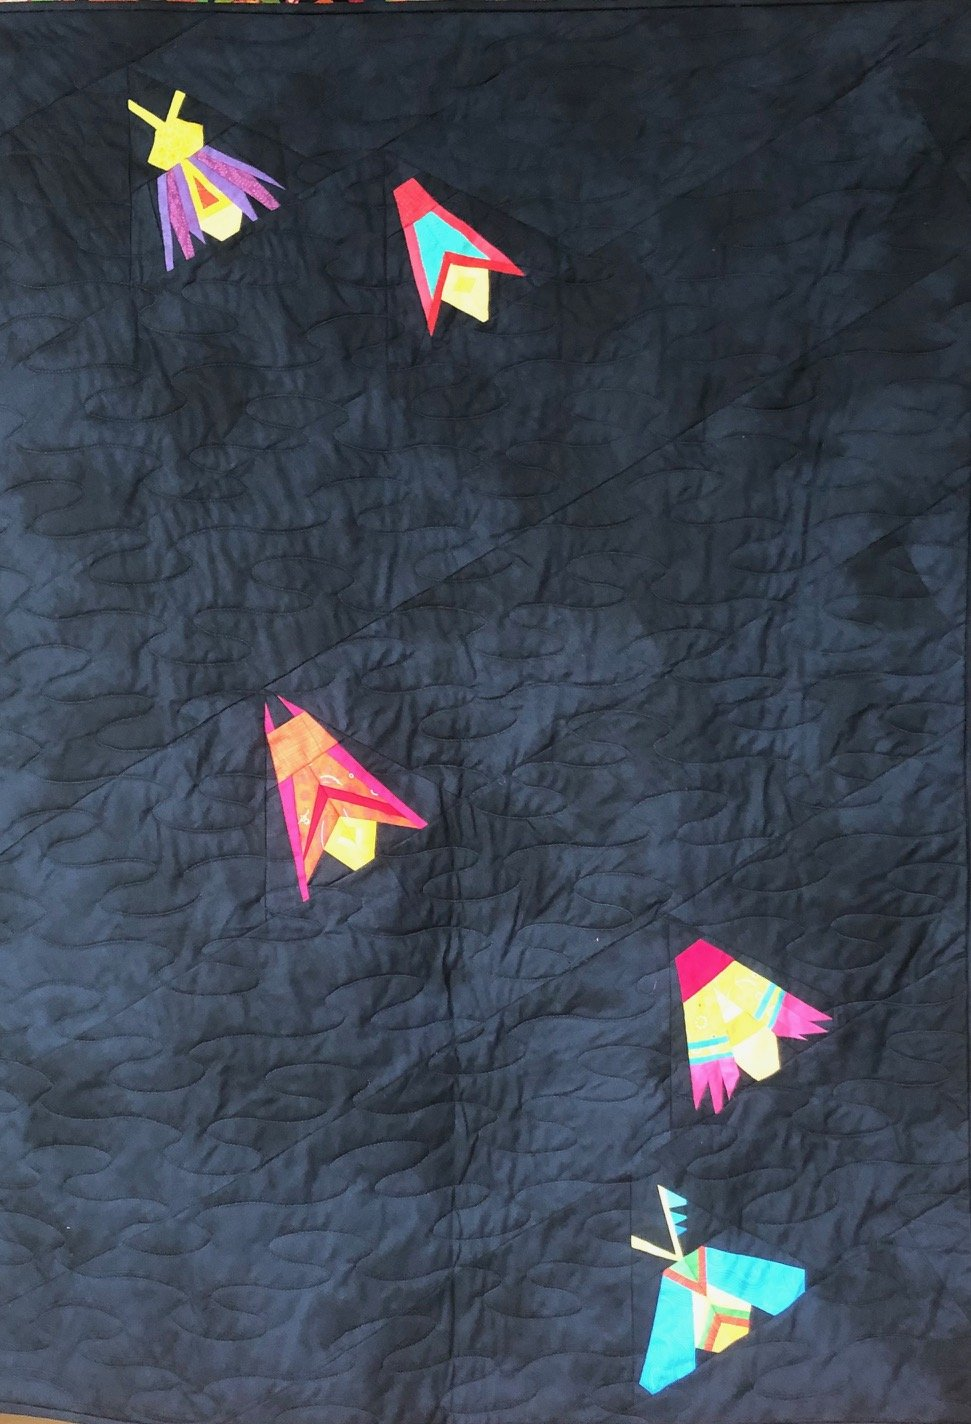 Firefly quilt kit -- foundation paper piecing